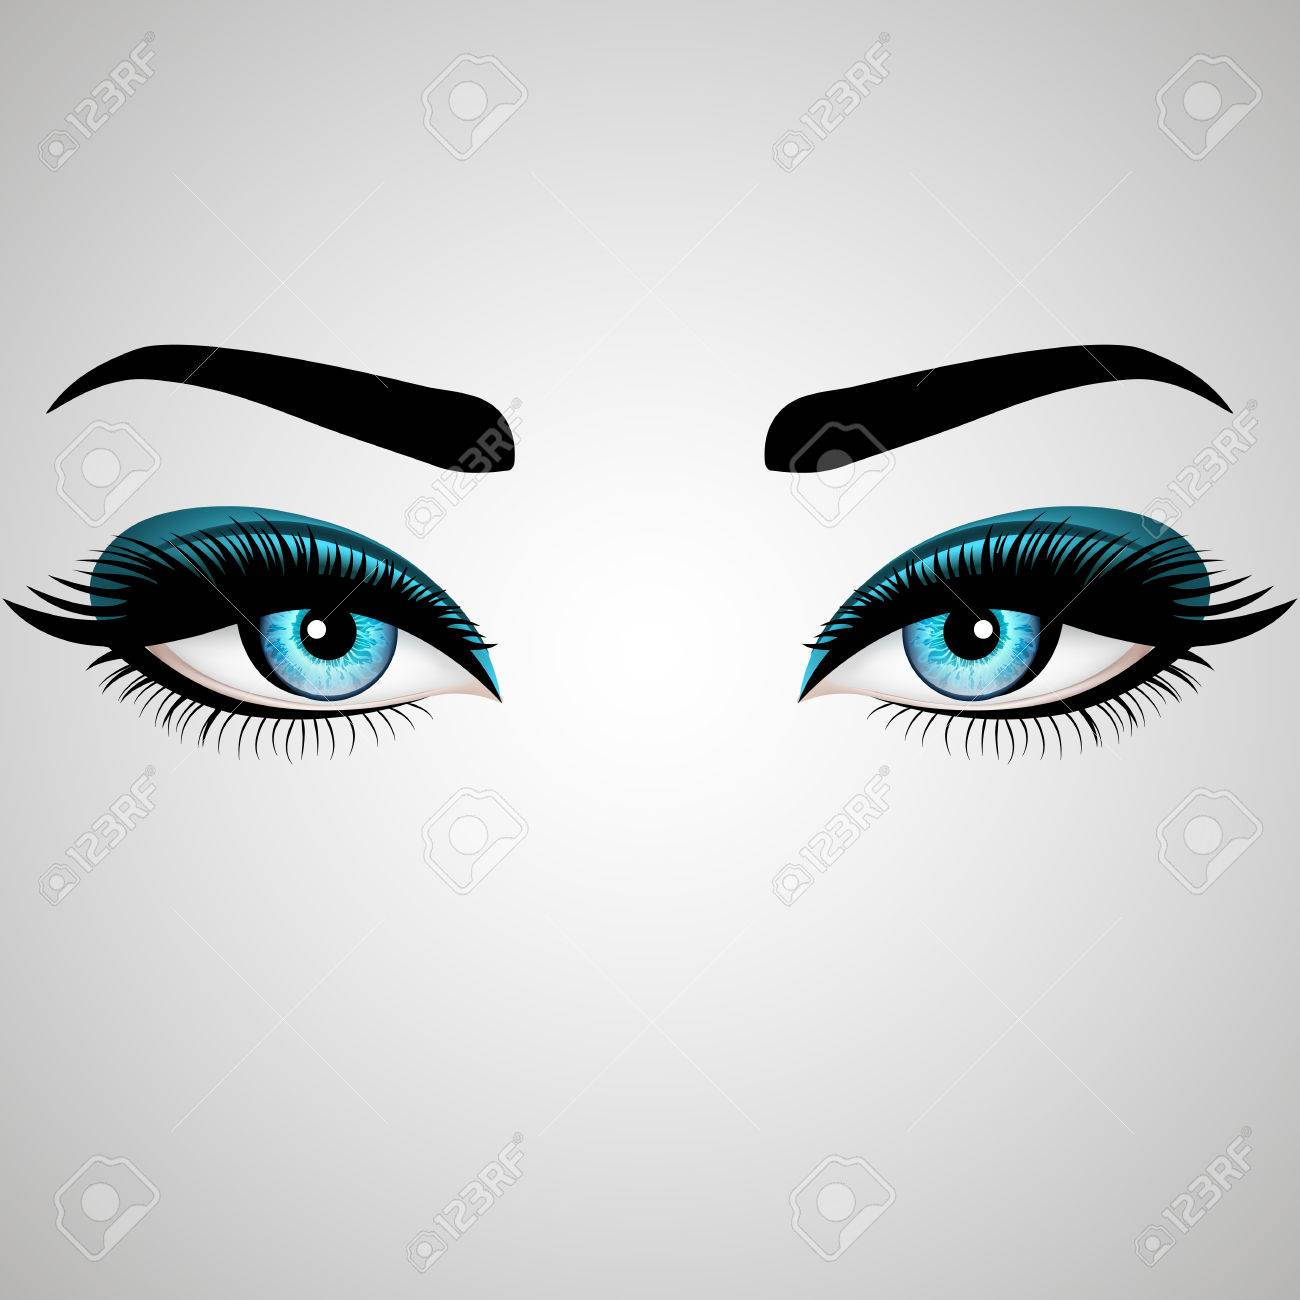 Beautiful Womans Eyes Vector Illustration Realistic Blue Eyes Royalty Free Cliparts Vectors And Stock Illustration Image 74556262